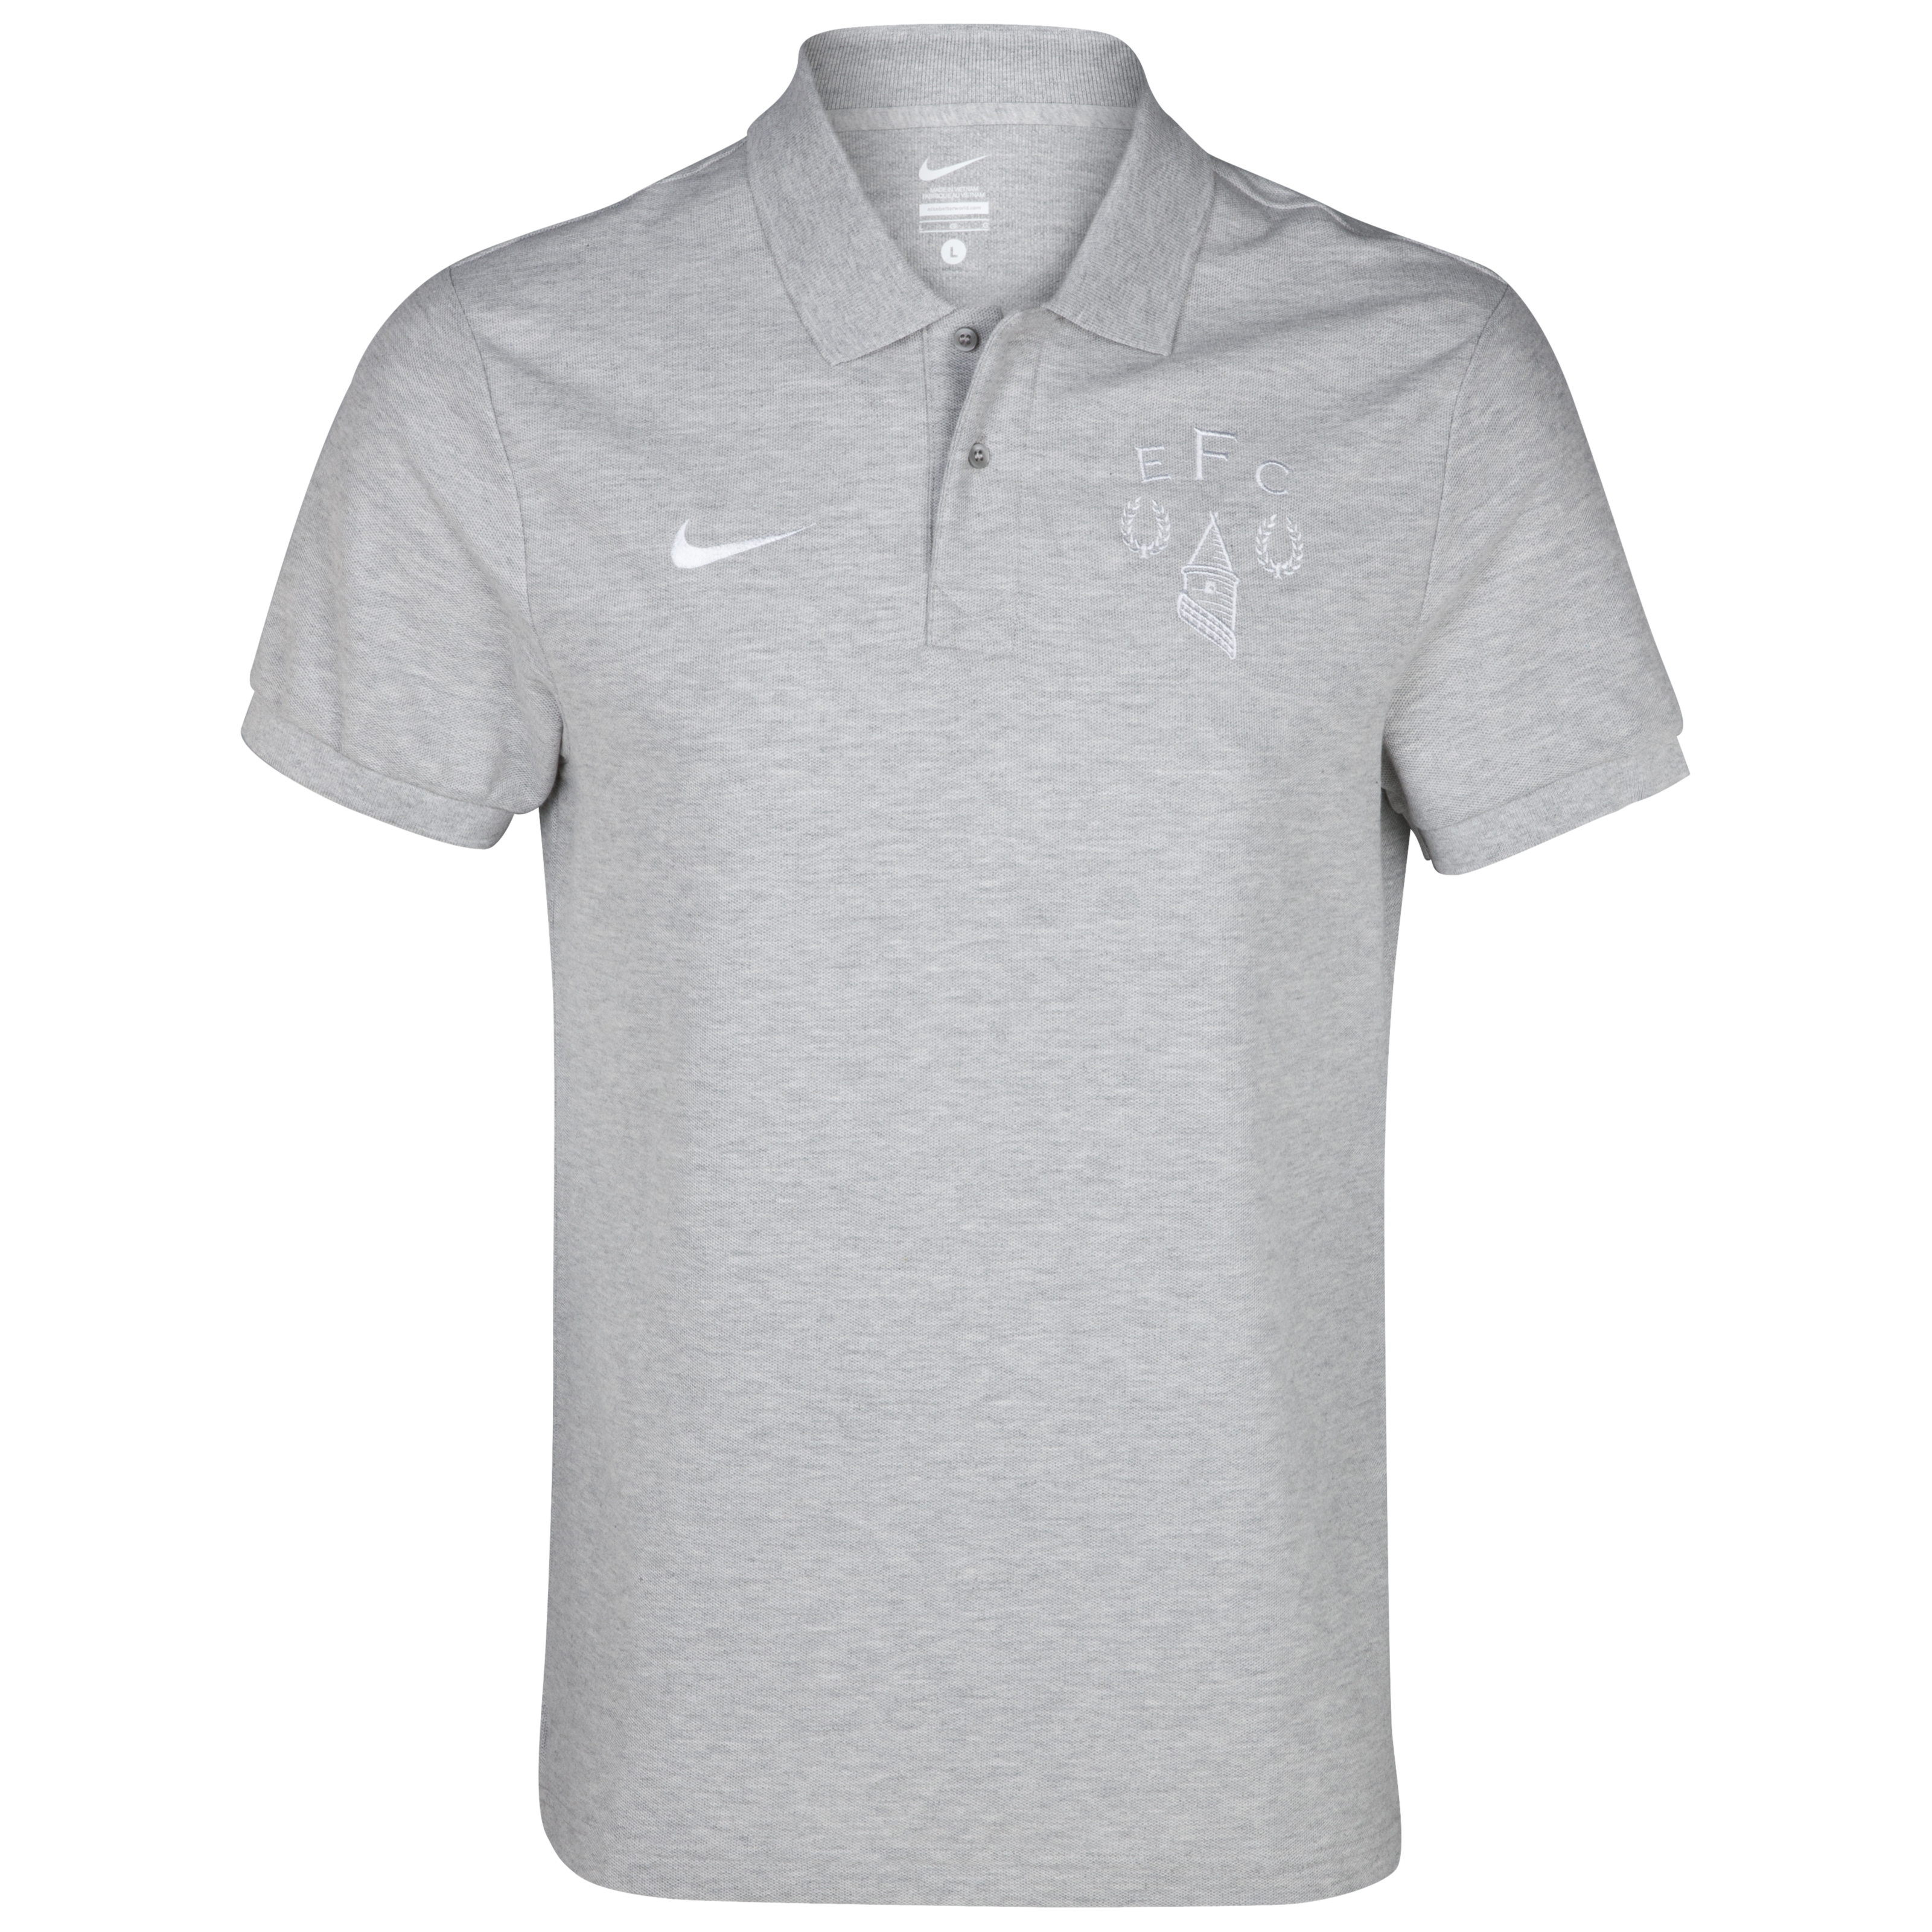 Everton Heritage Polo Shirt - Grey Heather/White